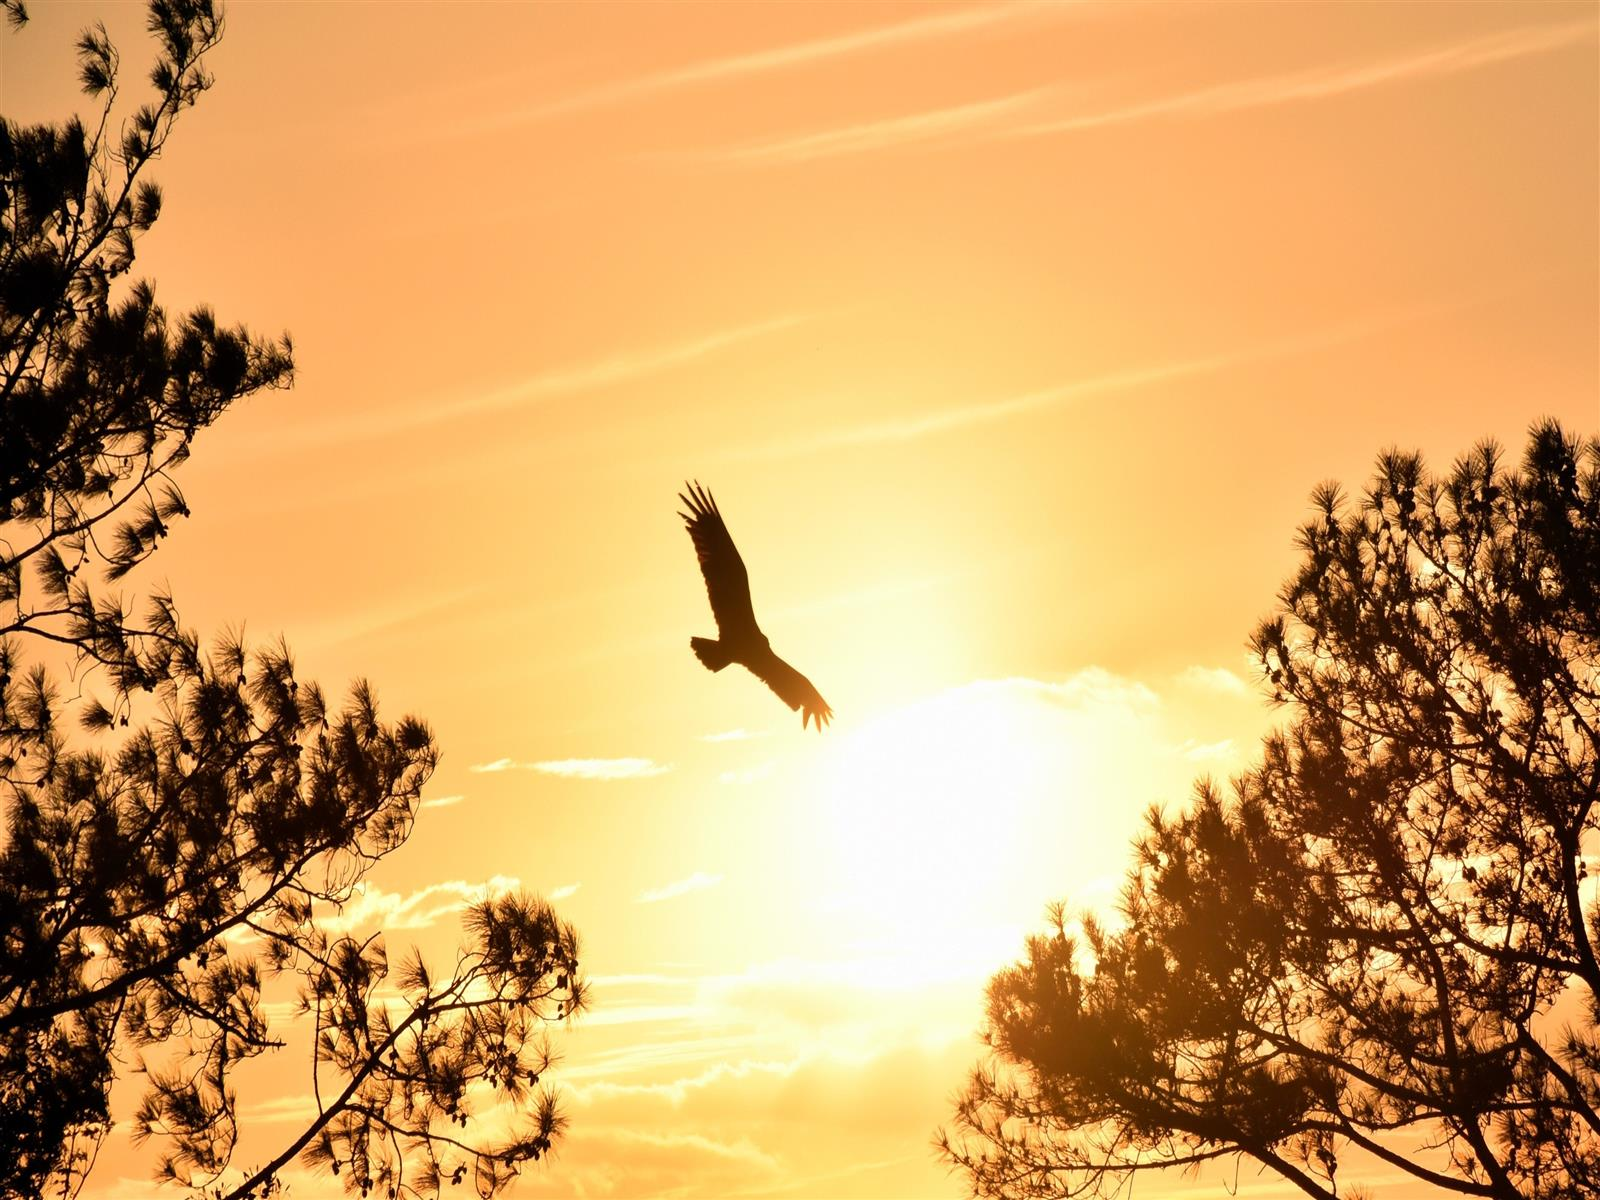 1600x1200 Eagle Flying in Sky During Sunset 4K Wallpapers